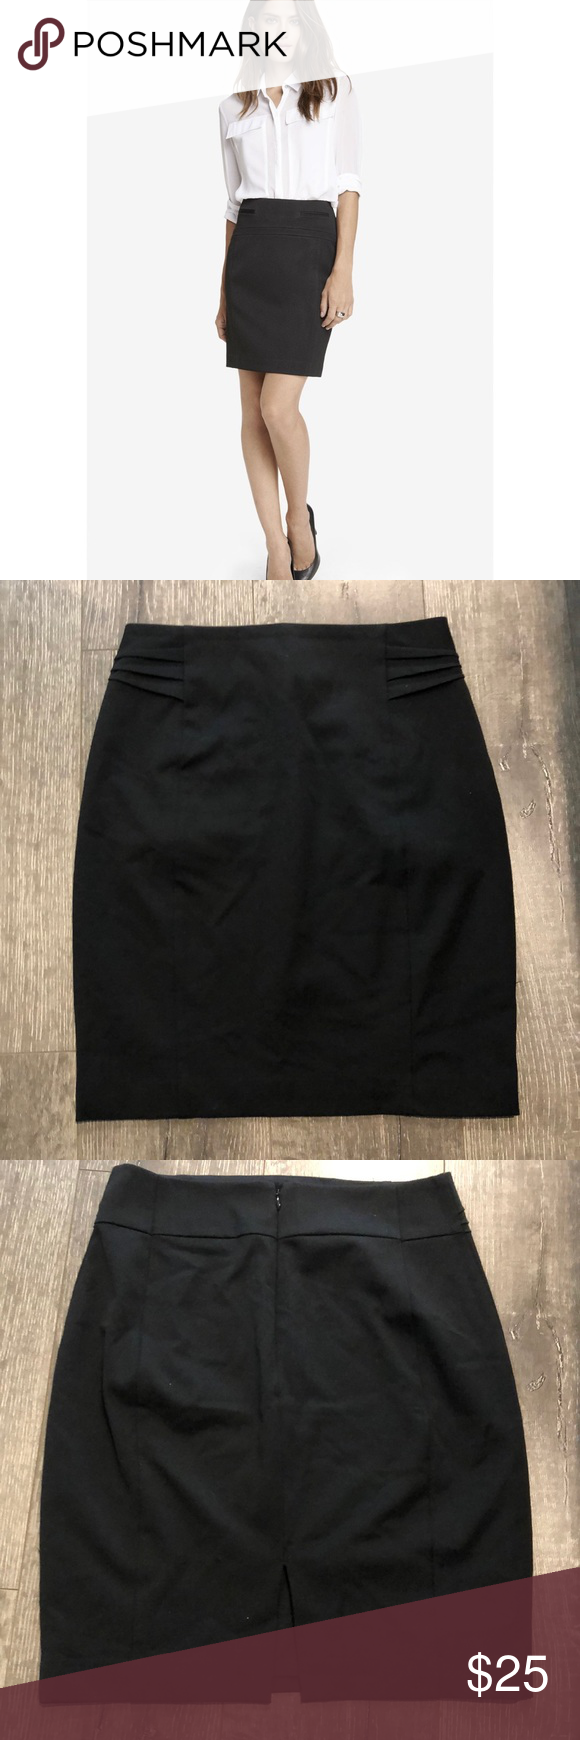 Express Black Pencil Skirt Cute *lined* pencil skirt from Express. Sits a little...